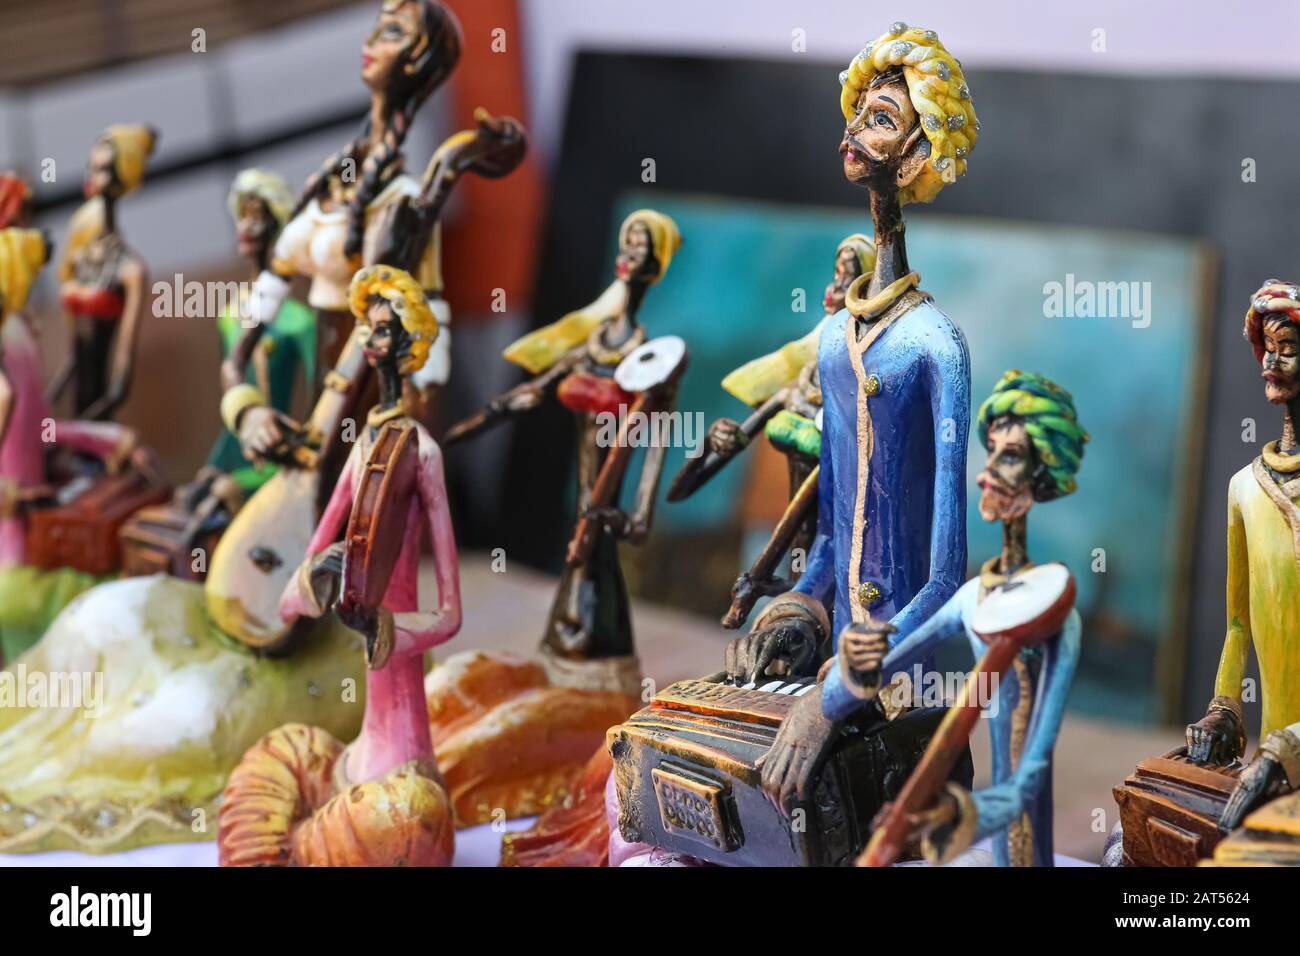 Handmade Models Used As Home Decorative Items On Display For Sale At A Handicraft Fare At Kolkata India Stock Photo Alamy